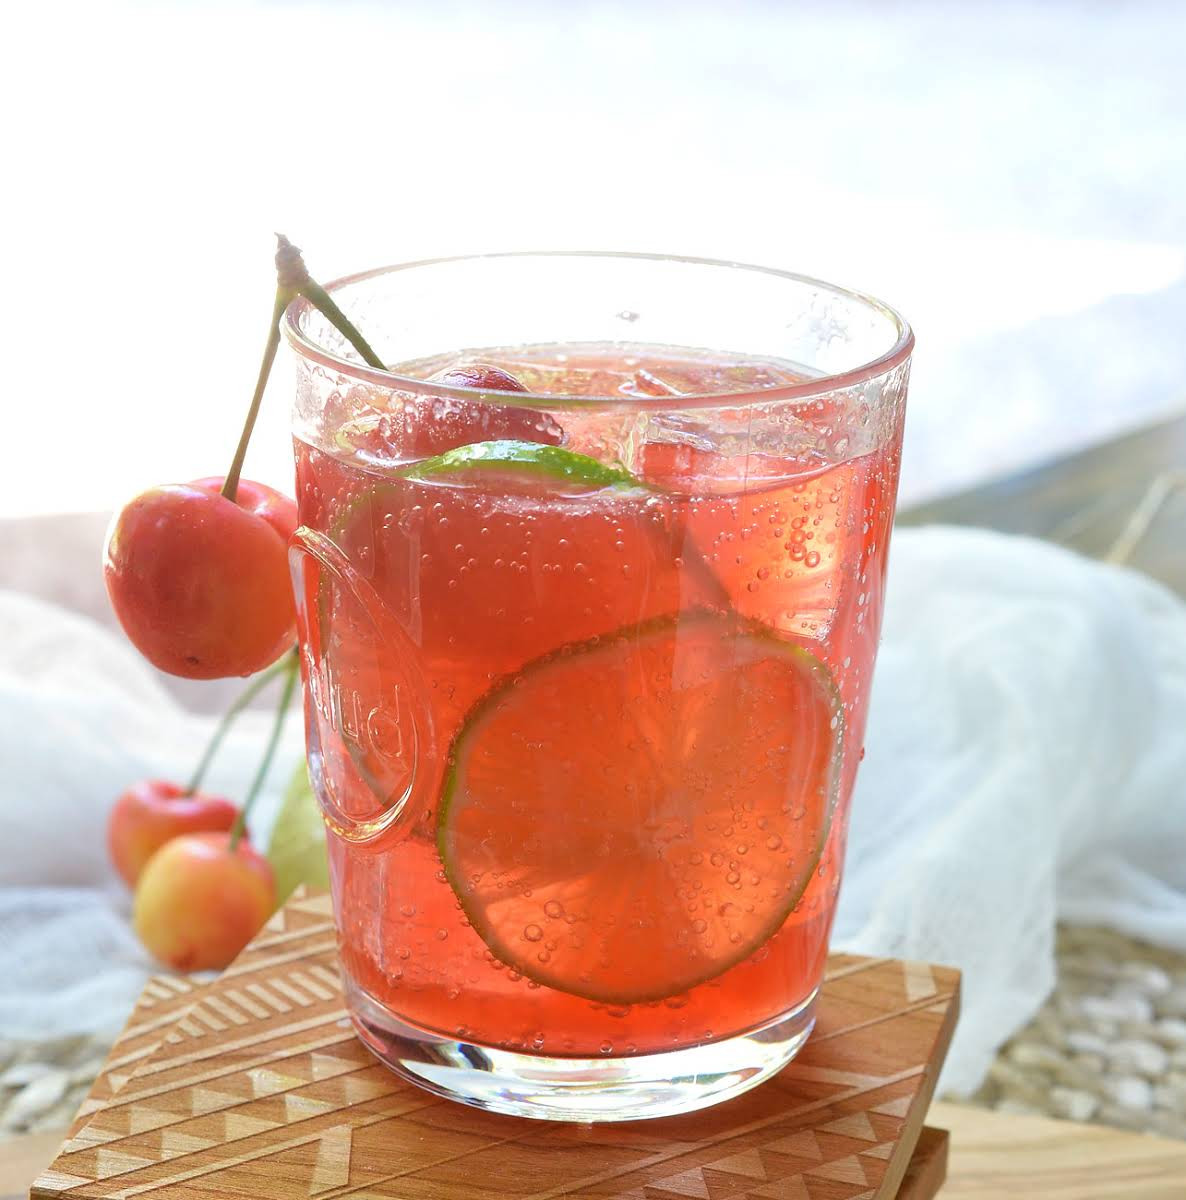 Popular Tequila Drinks  10 Best Tequila and 7up Drinks Recipes